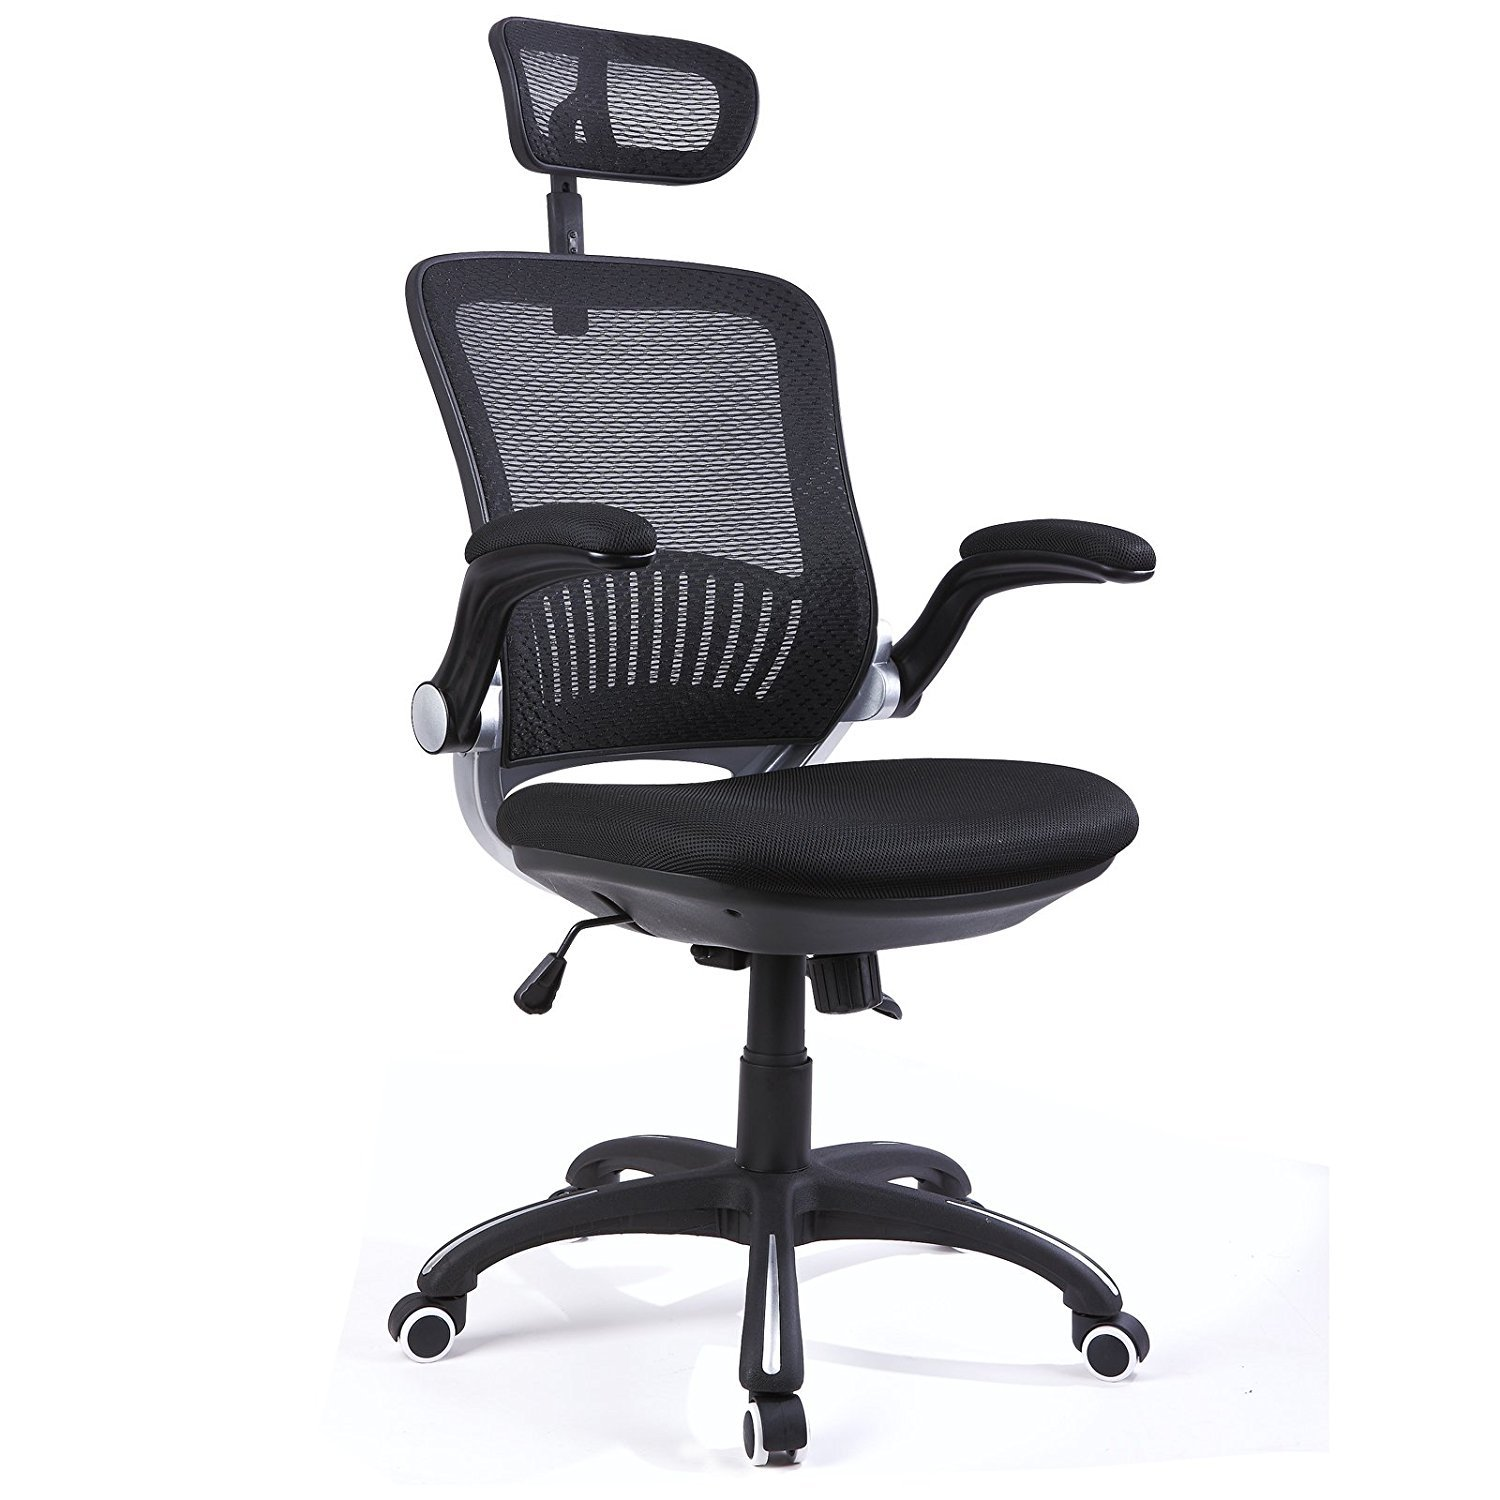 H&L Office High Back Mesh Multi-Functional Executive & Managerial Computer Desk Swivel Office Chair with Recliner, Adjustable Headrest and Flexible Arm Rest (Executive Black)